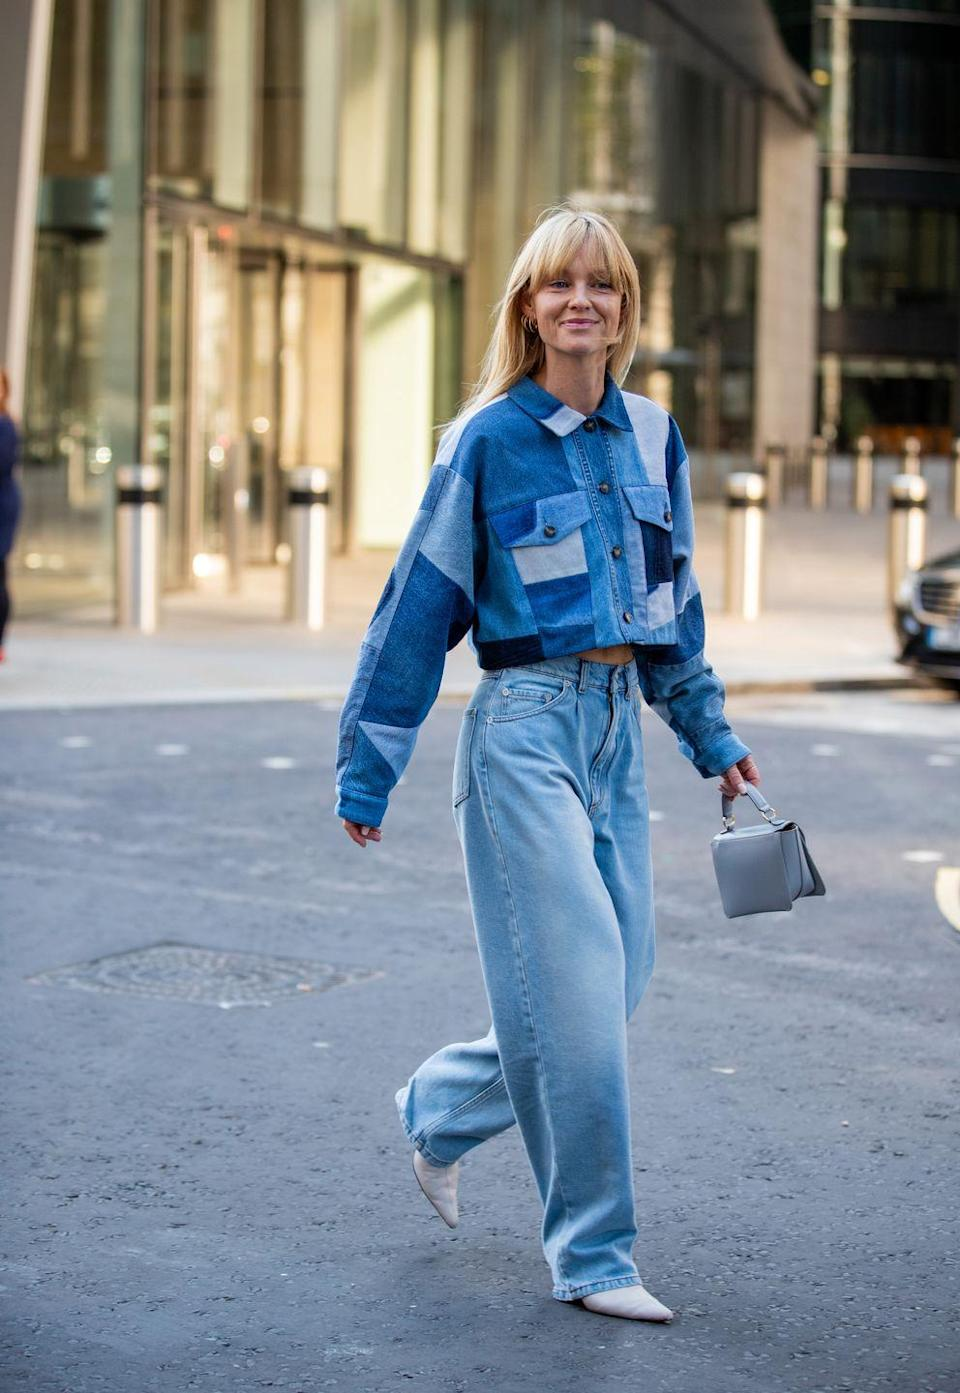 <p>The '70s have experienced a resurgence lately, and patchwork is just one of the many amazing trends that surfaced during that time period. Try a patchwork jean jacket for a look that's truly crafty.</p>